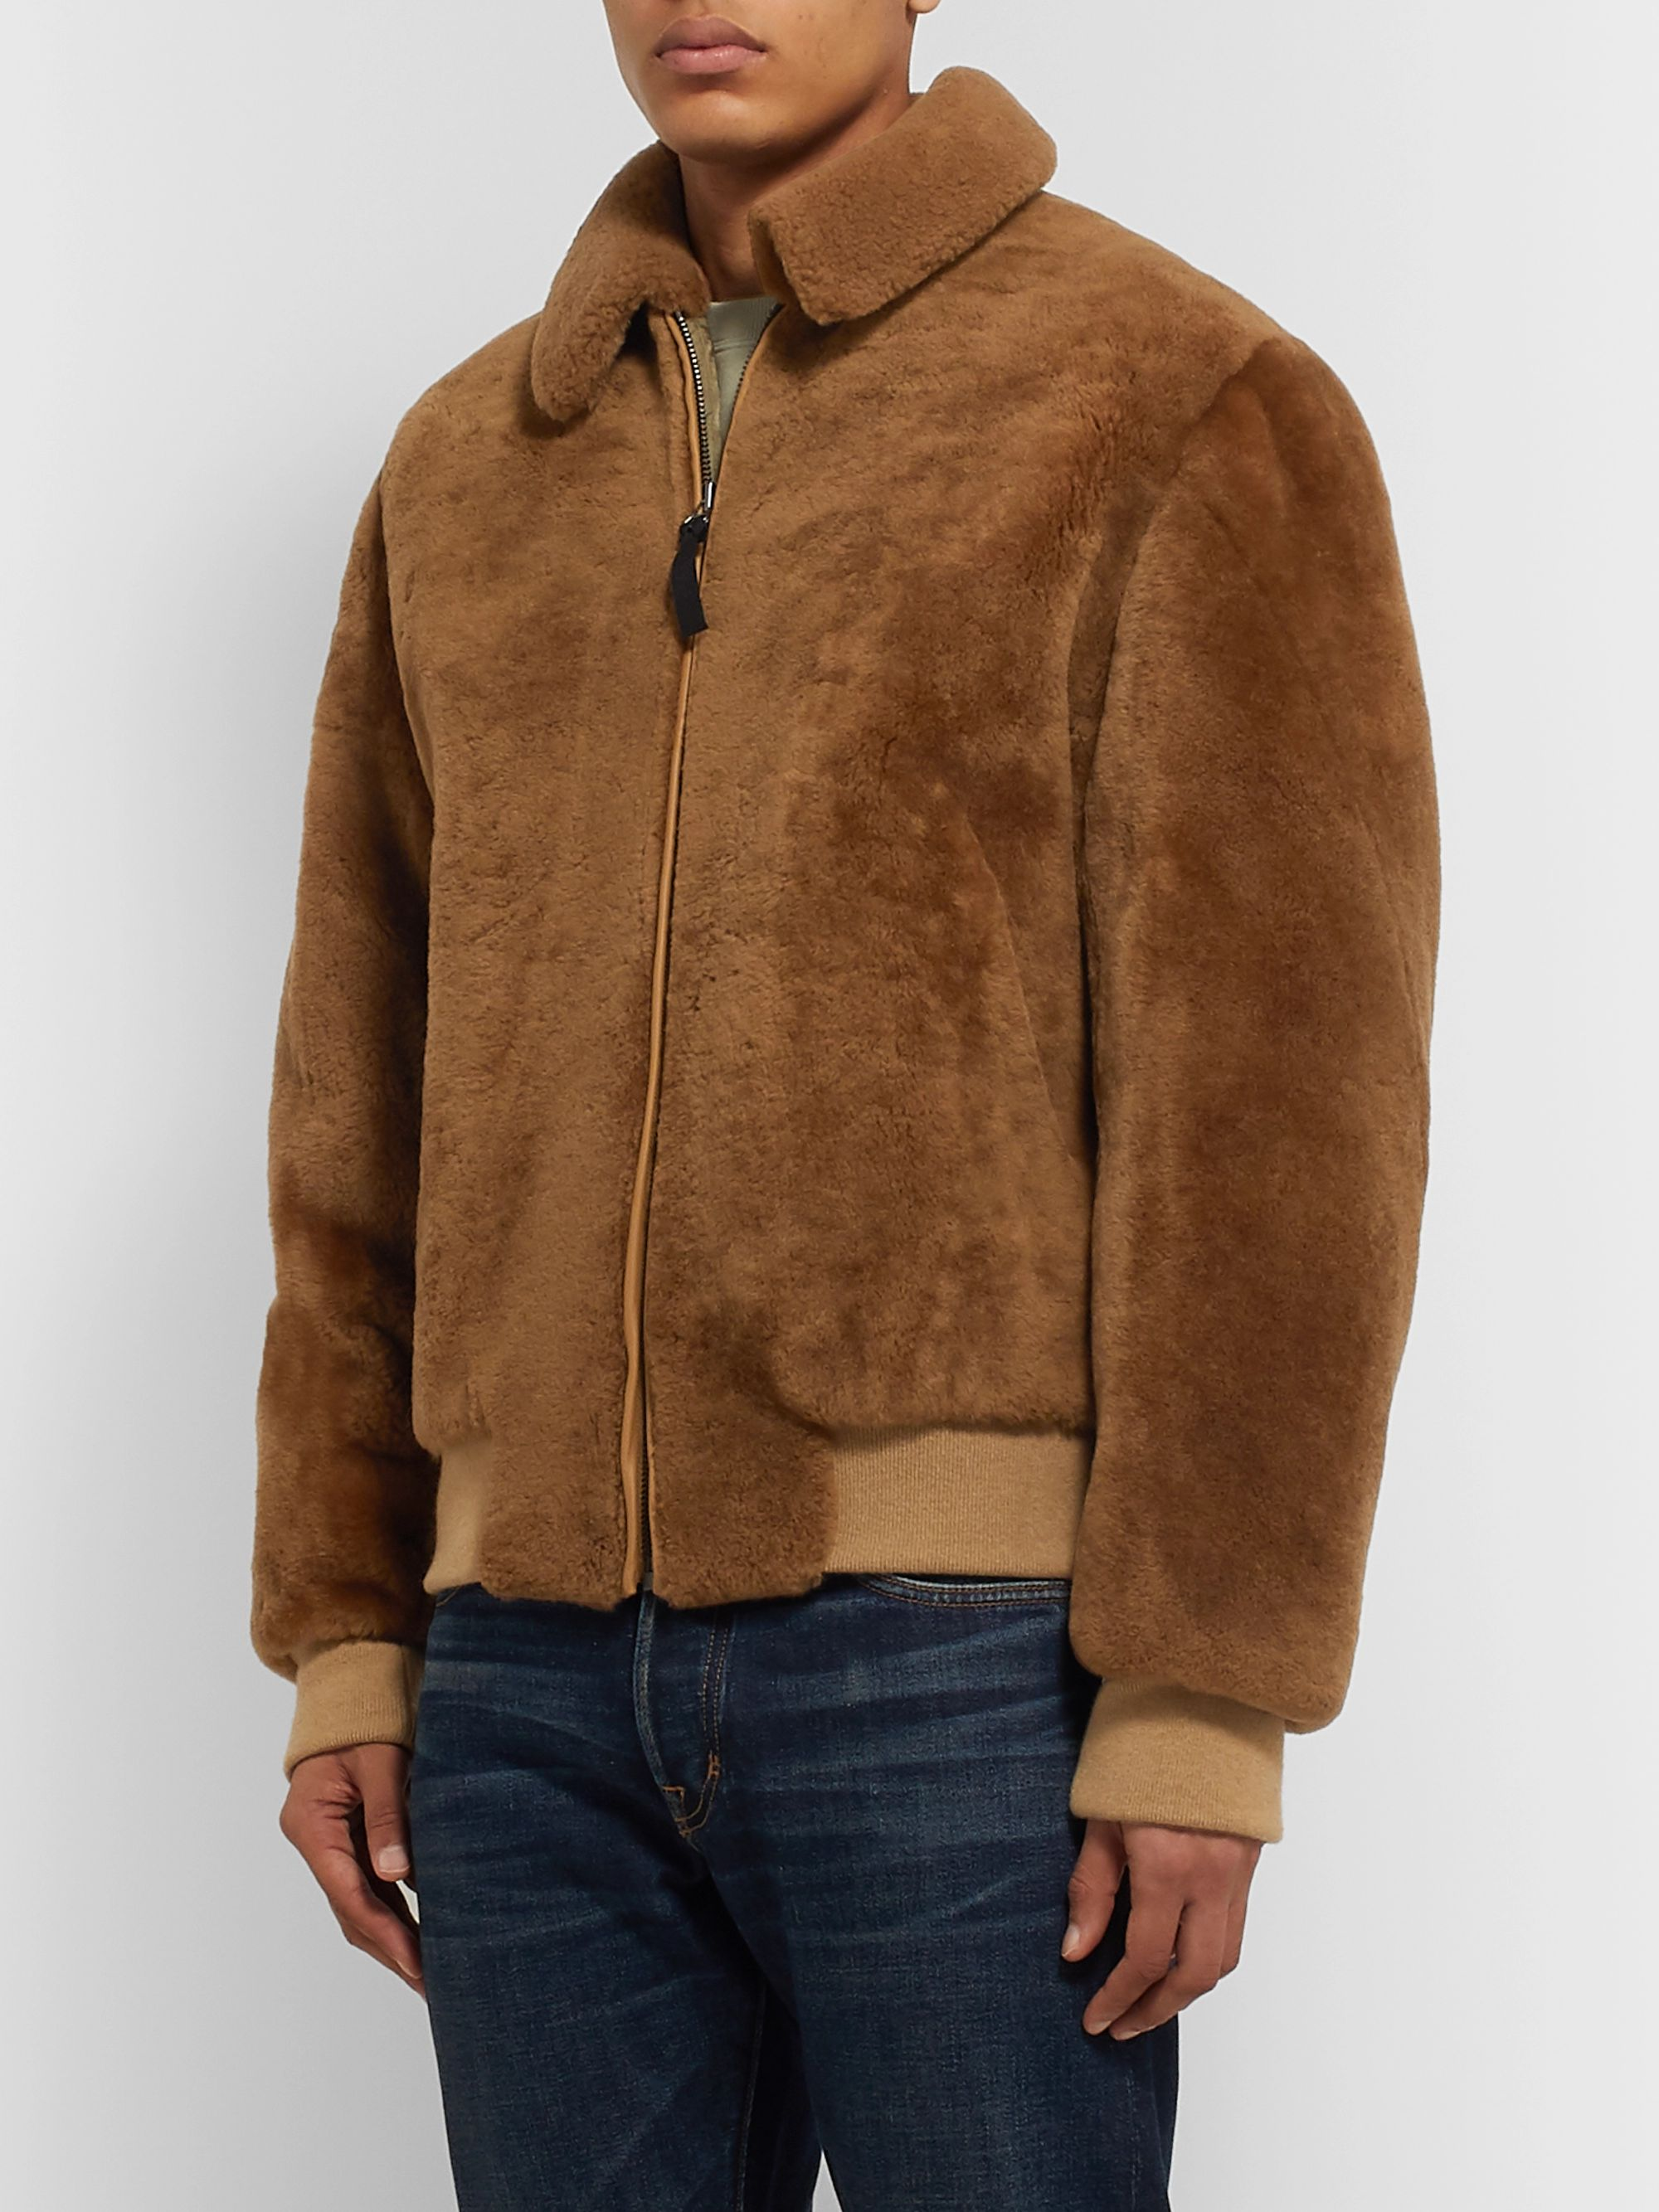 Yves Salomon Shearling Blouson Jacket